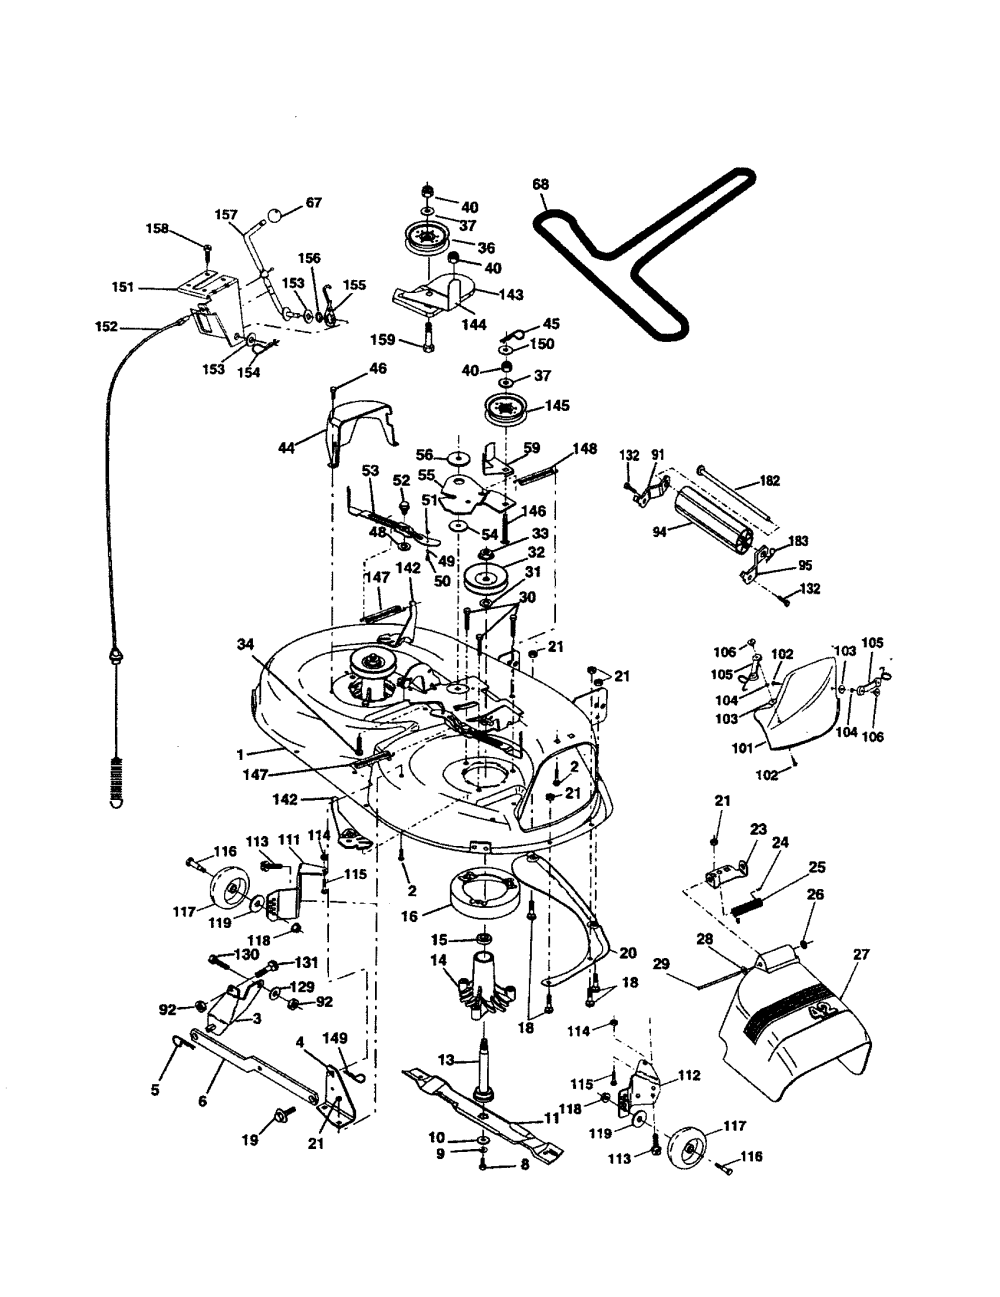 medium resolution of poulan riding mower schematics wiring diagrams value poulan riding mower manual looking for poulan model ppr20h42stc